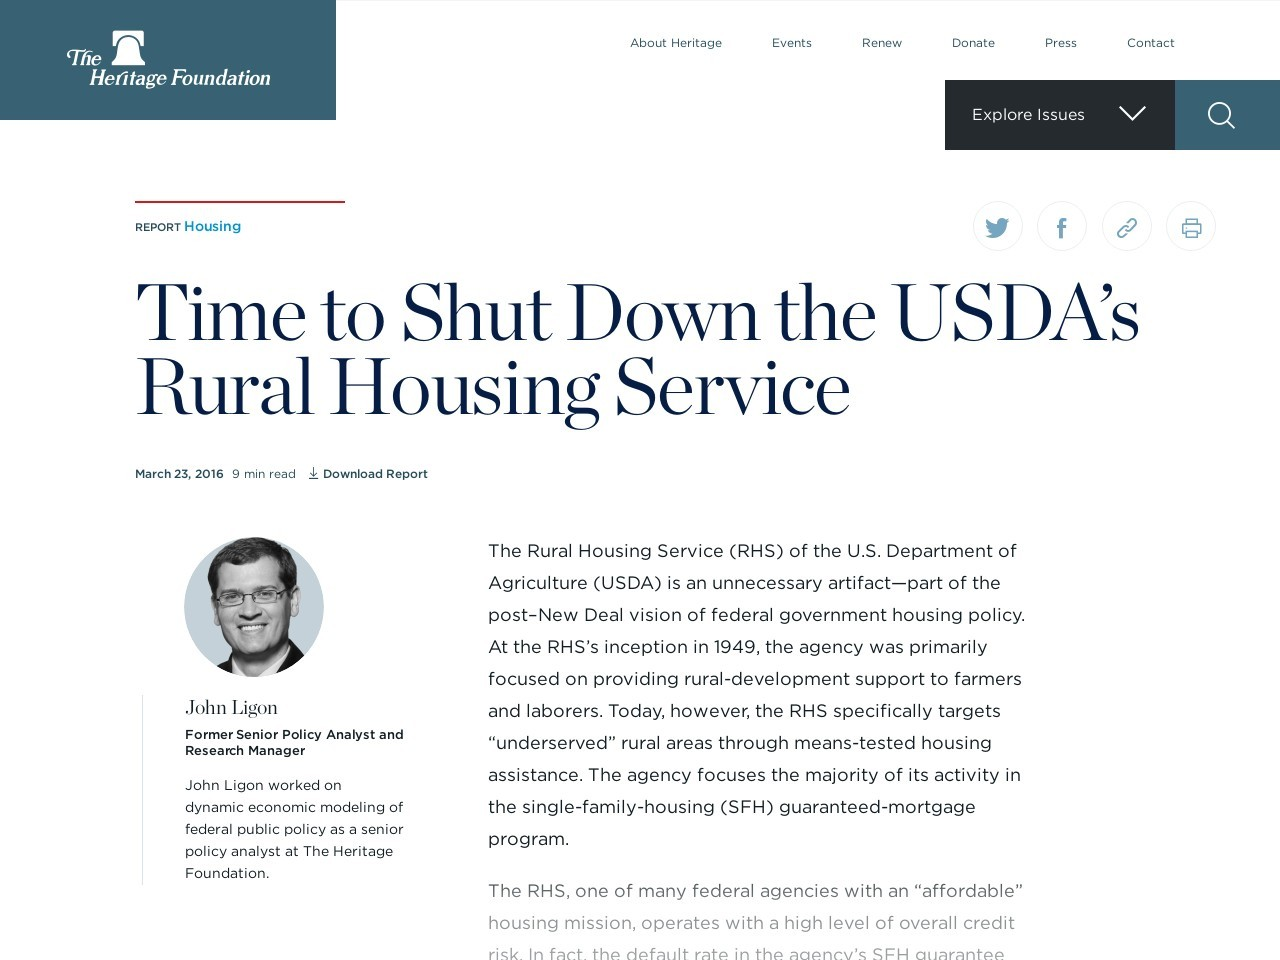 Time to Shut Down the USDA's Rural Housing Service